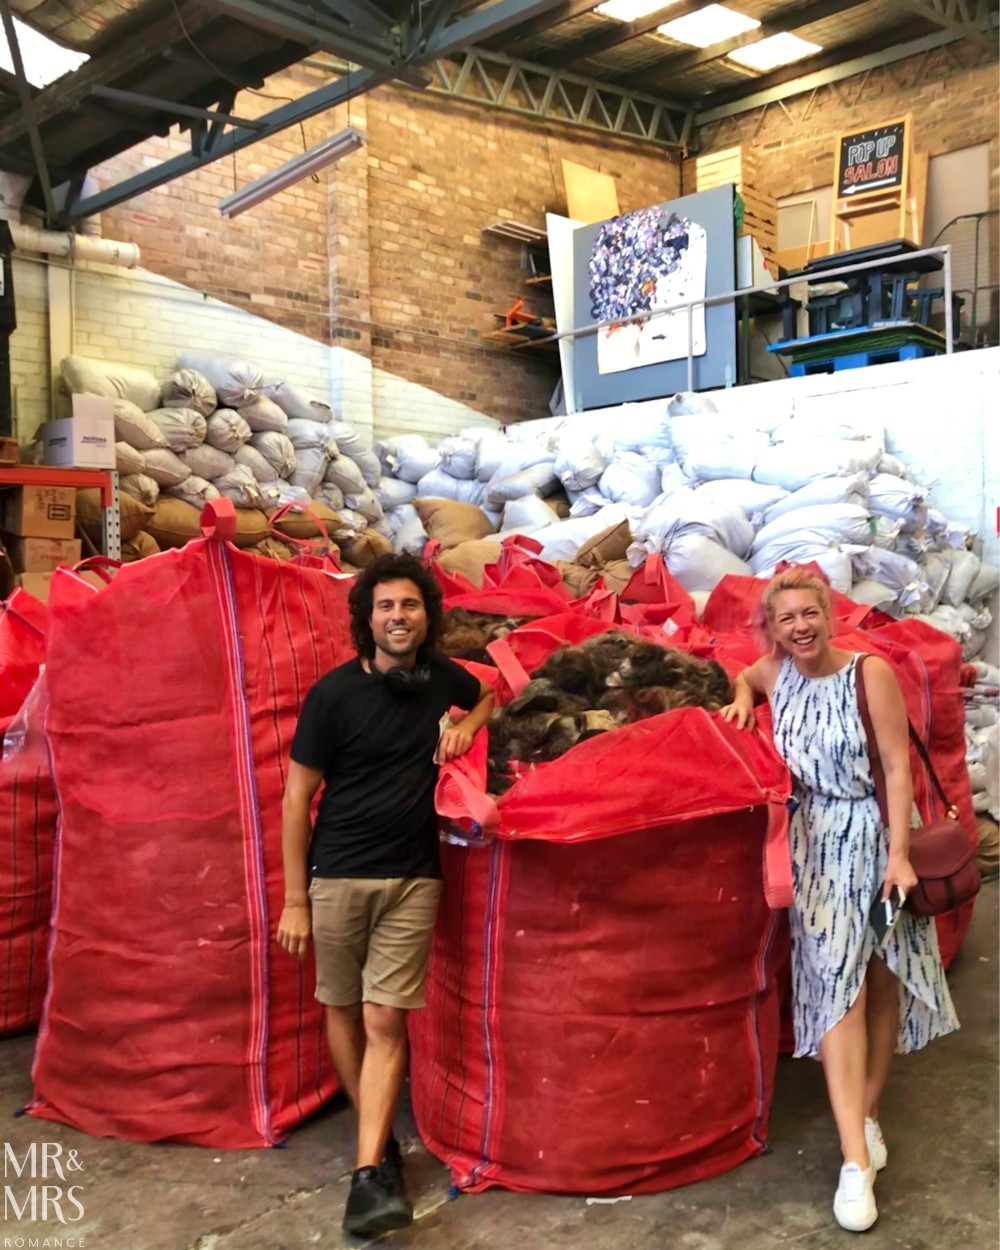 Weekly Edition - Paul Frasca and Christina at Sustainable Salons warehouse